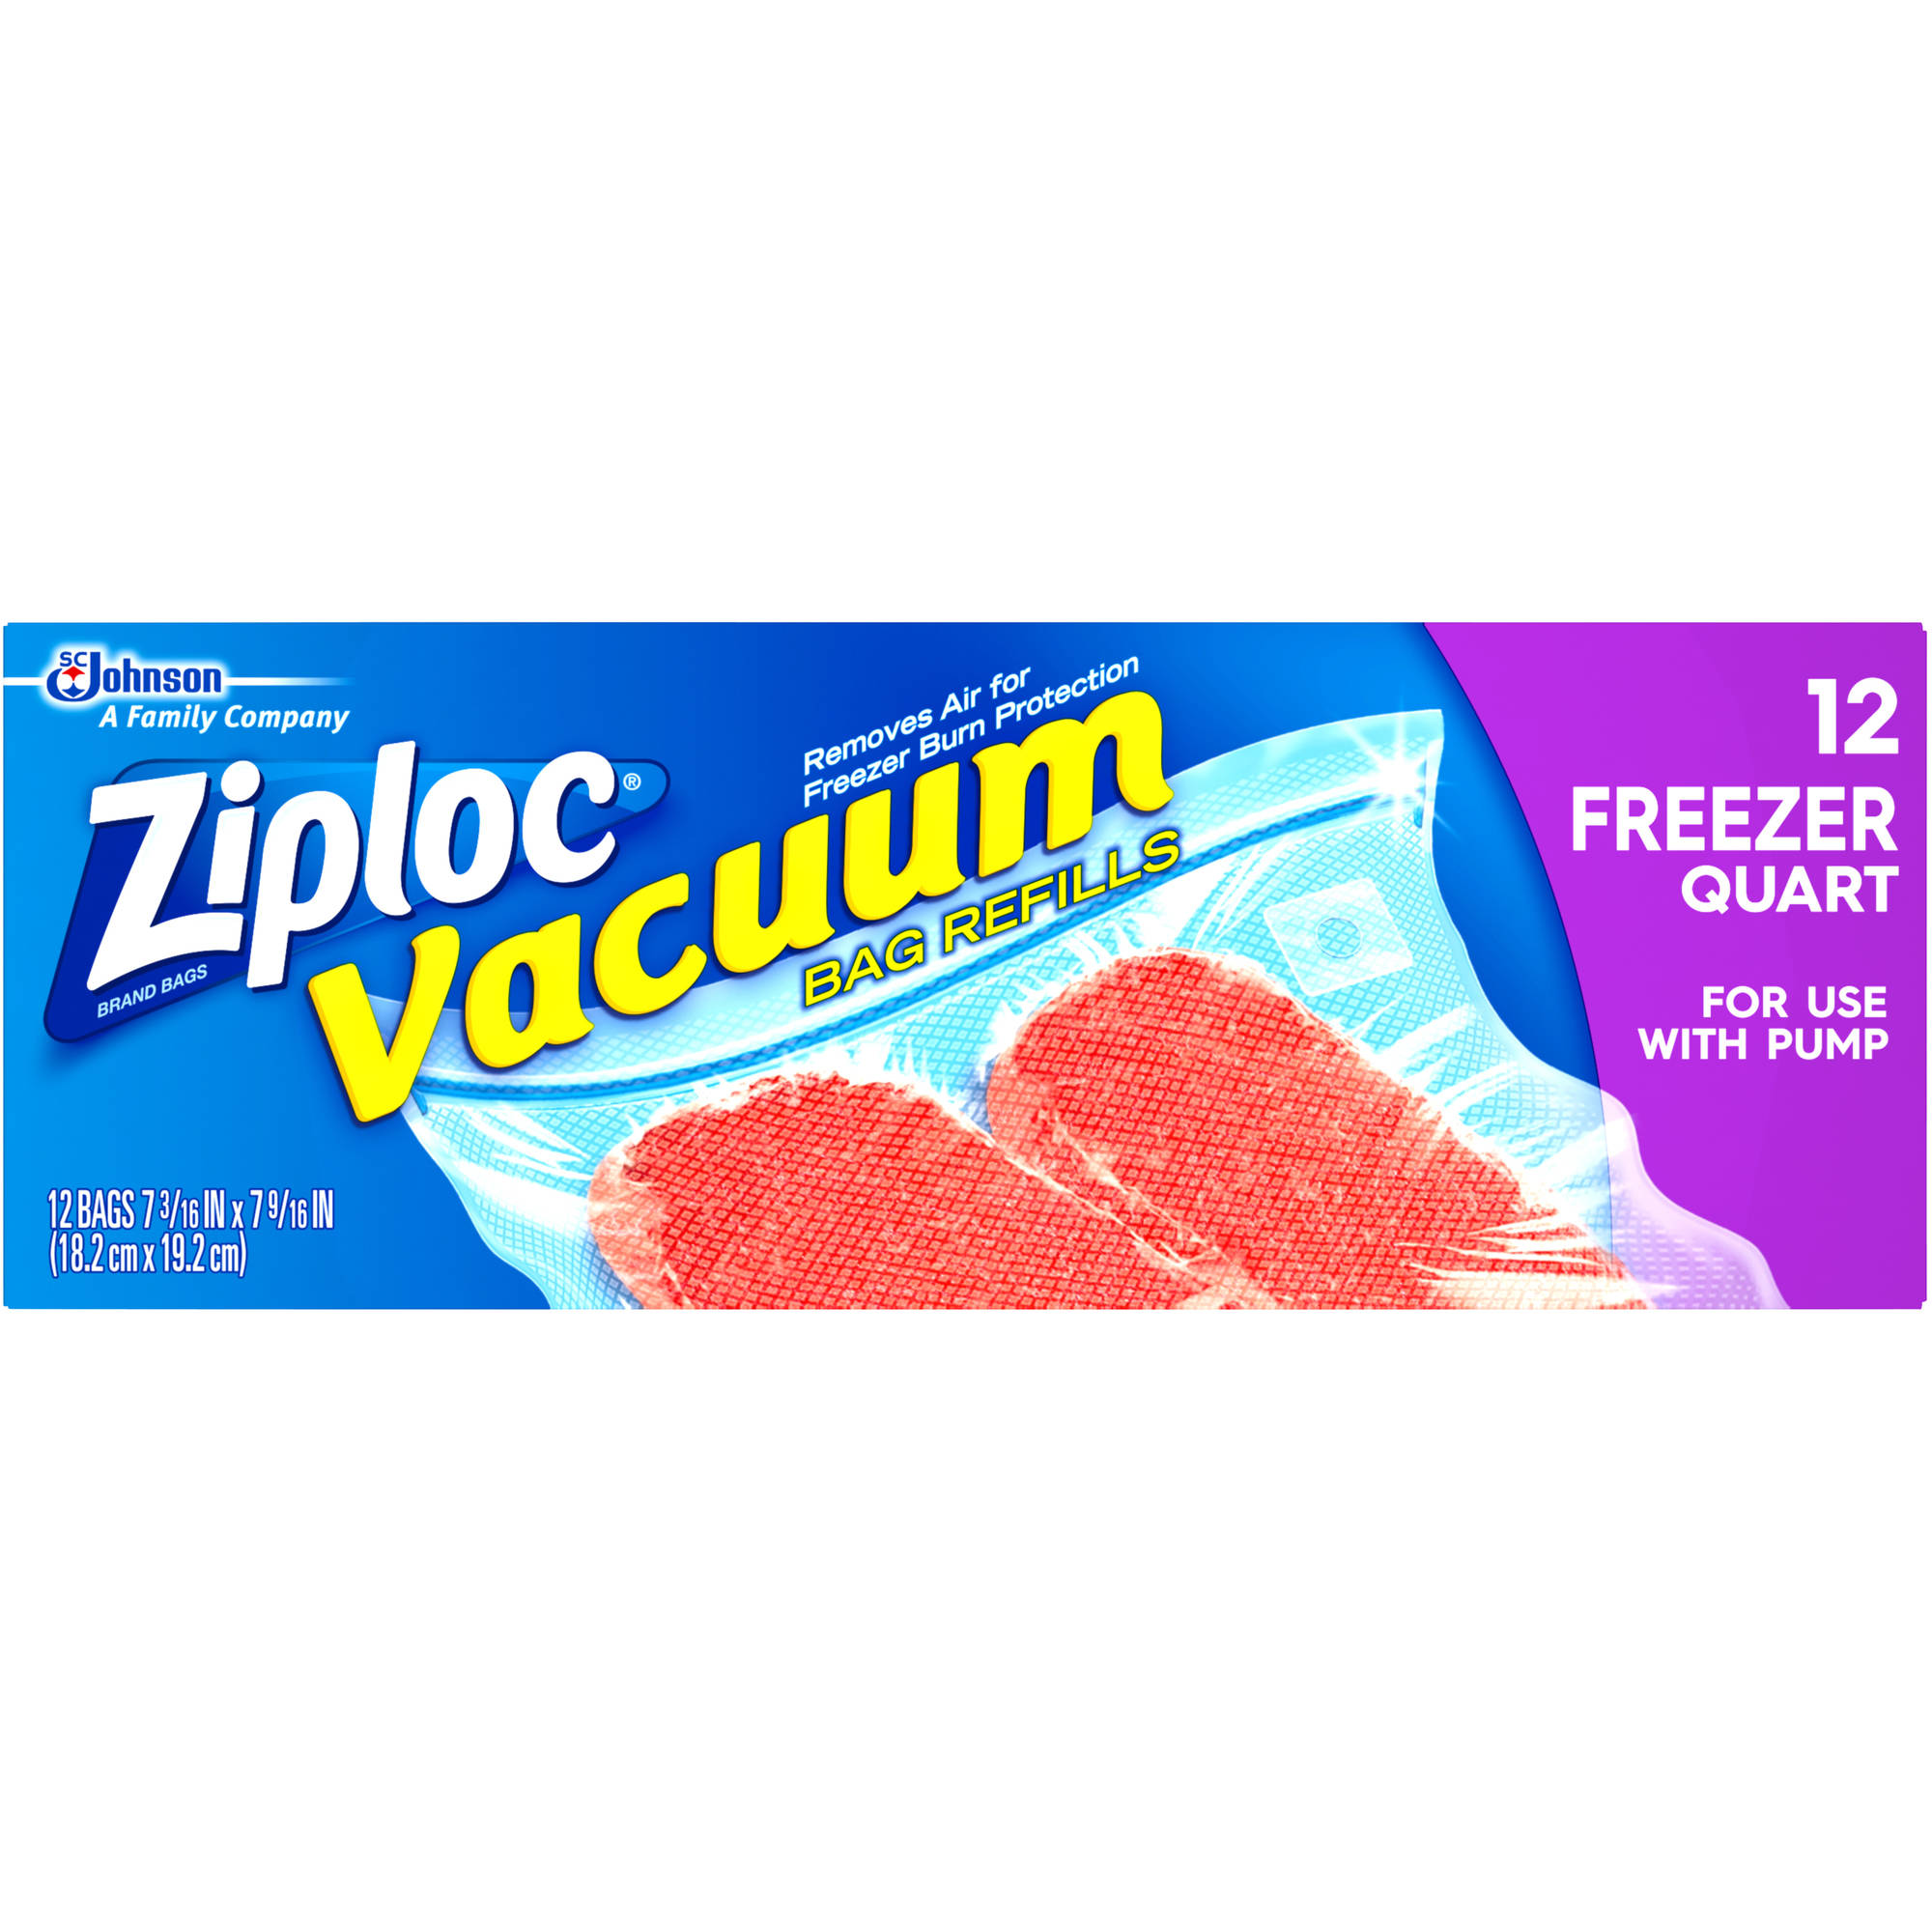 Ziploc Freezer Quart Vacuum Bag Refills, 12 count